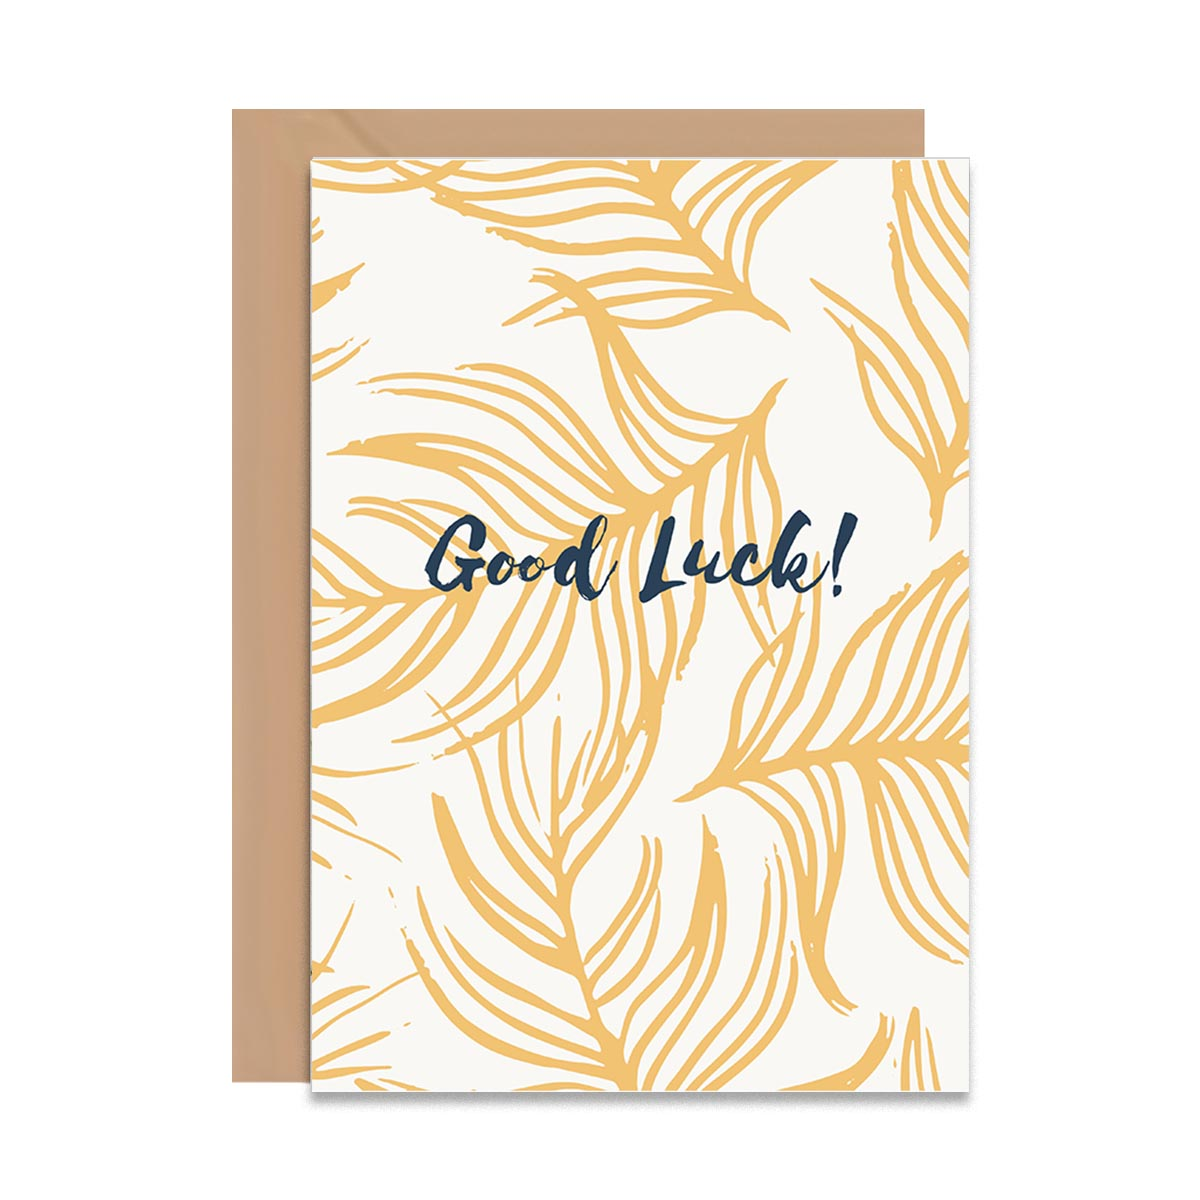 Good Luck Golden Feathers Card-Greeting Cards-Mode Prints